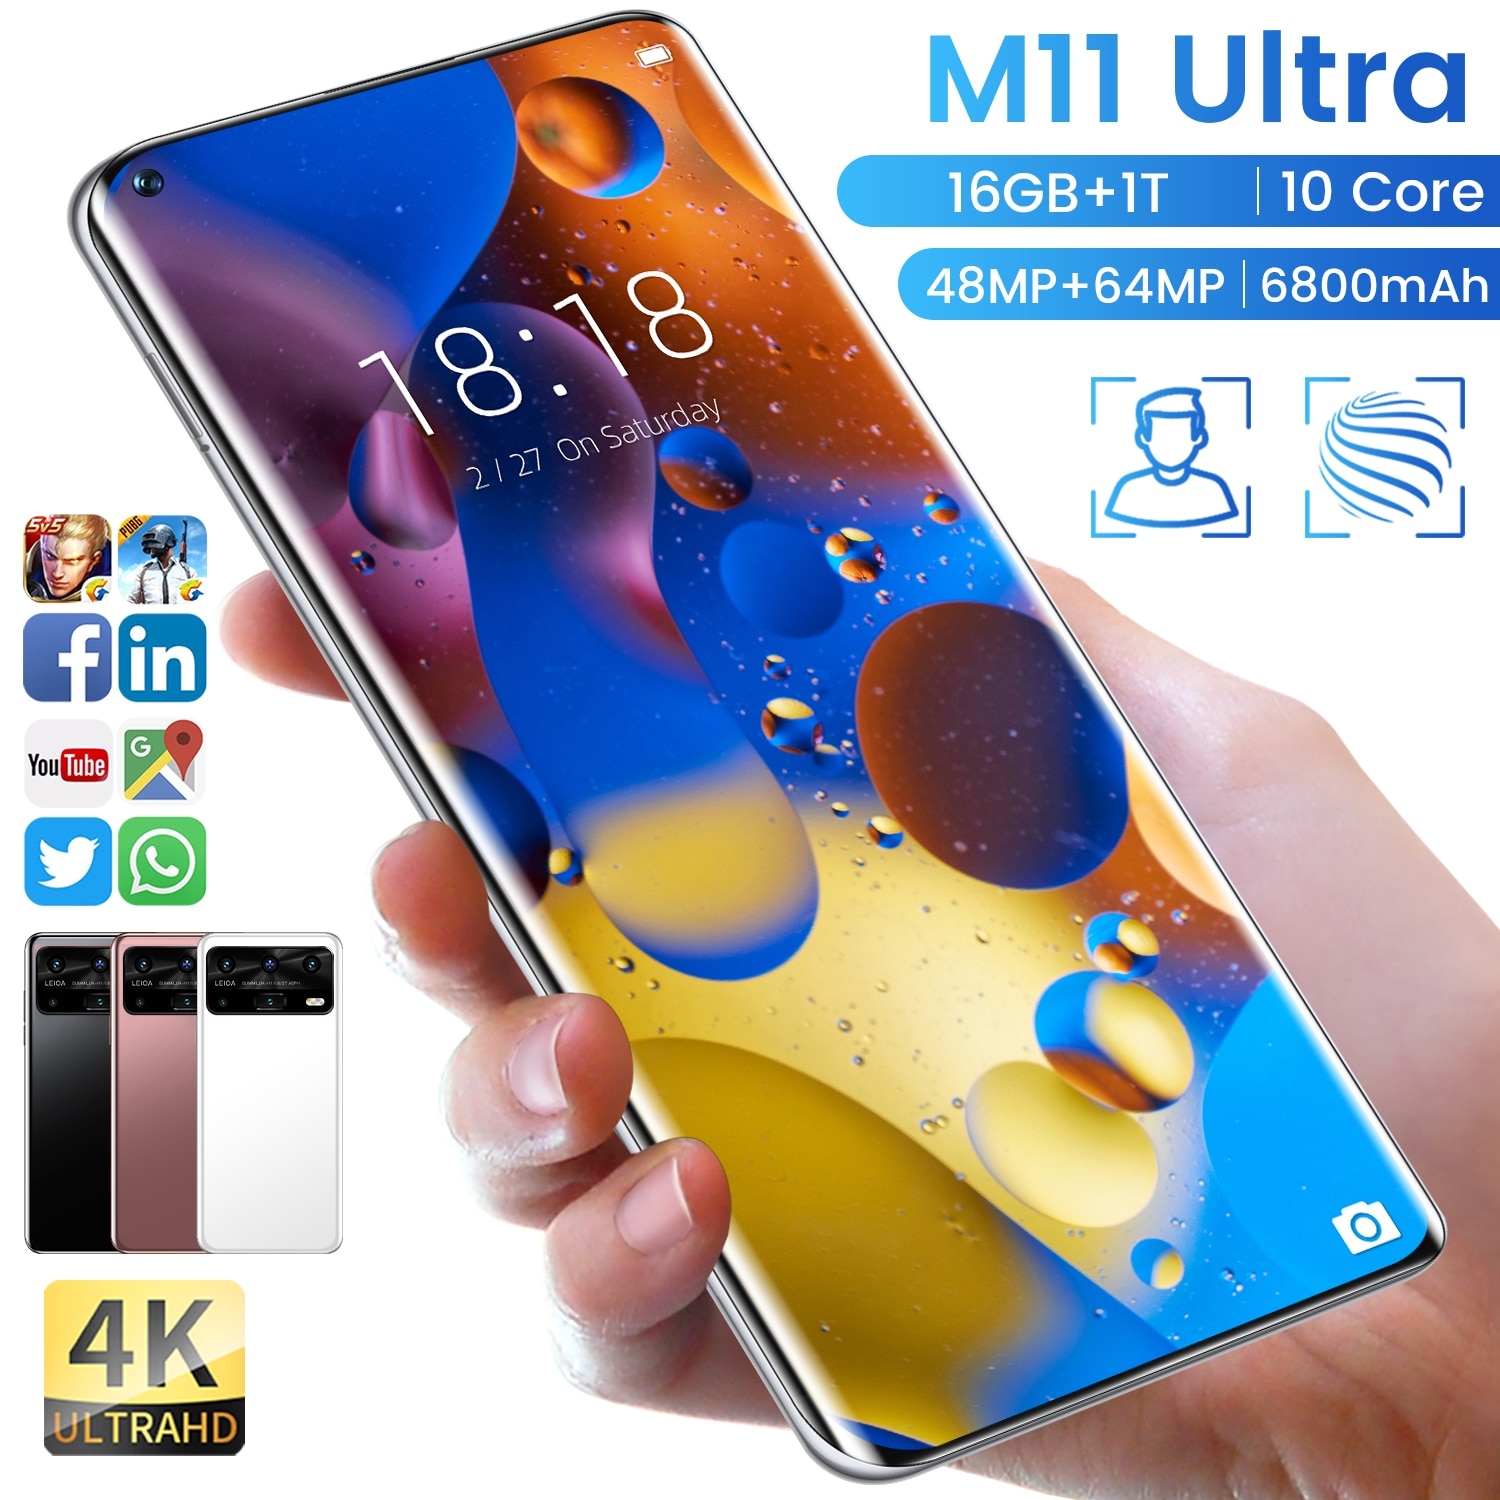 M11 Ultra Smartphone Android 10.0 7.3 HD Inch Mobile Phones 16GB+1T 48MP+64MP Cellphones Celular 5G Phone Global Version note 10 pro smartphone 6 7 inch 24mp 48mp dual sim cards phone global version mobile phones